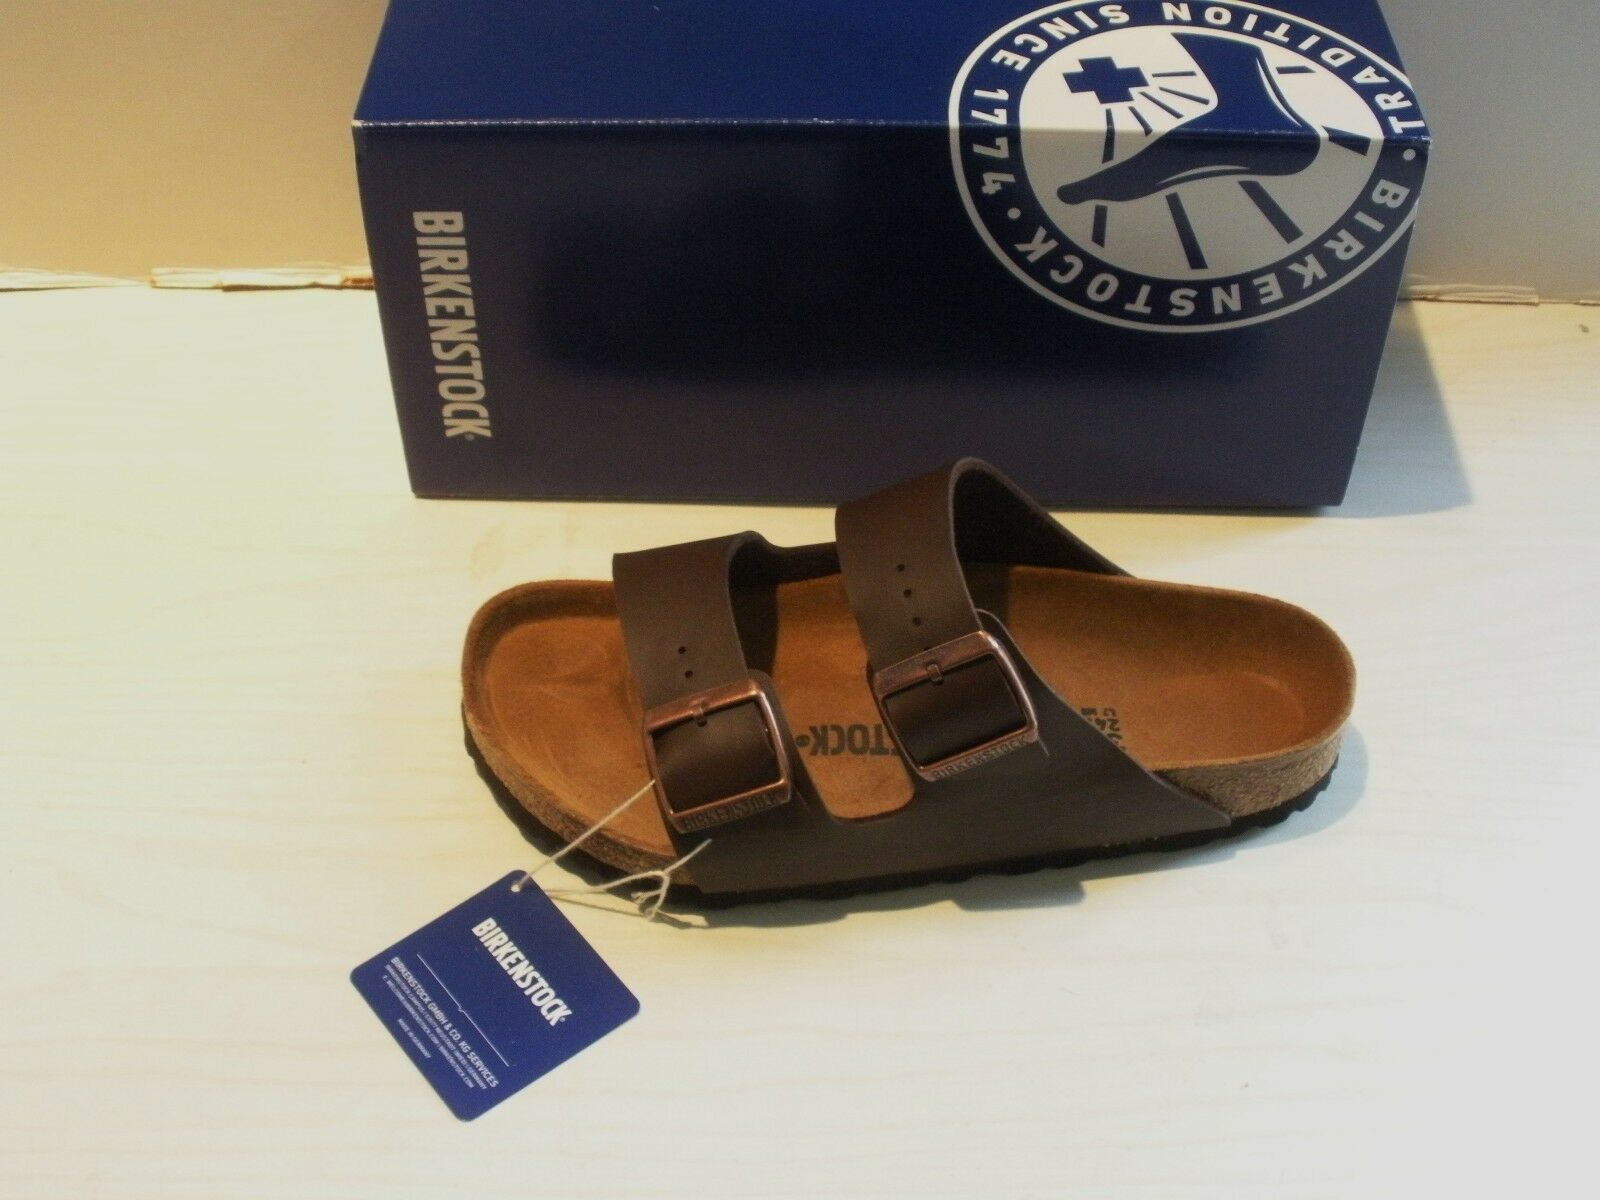 BIRKENSTOCK Damenschuhe ARIZONA SANDALS - BIRKO-FLOR- DARK BROWN- STYLE 051703 - NEW